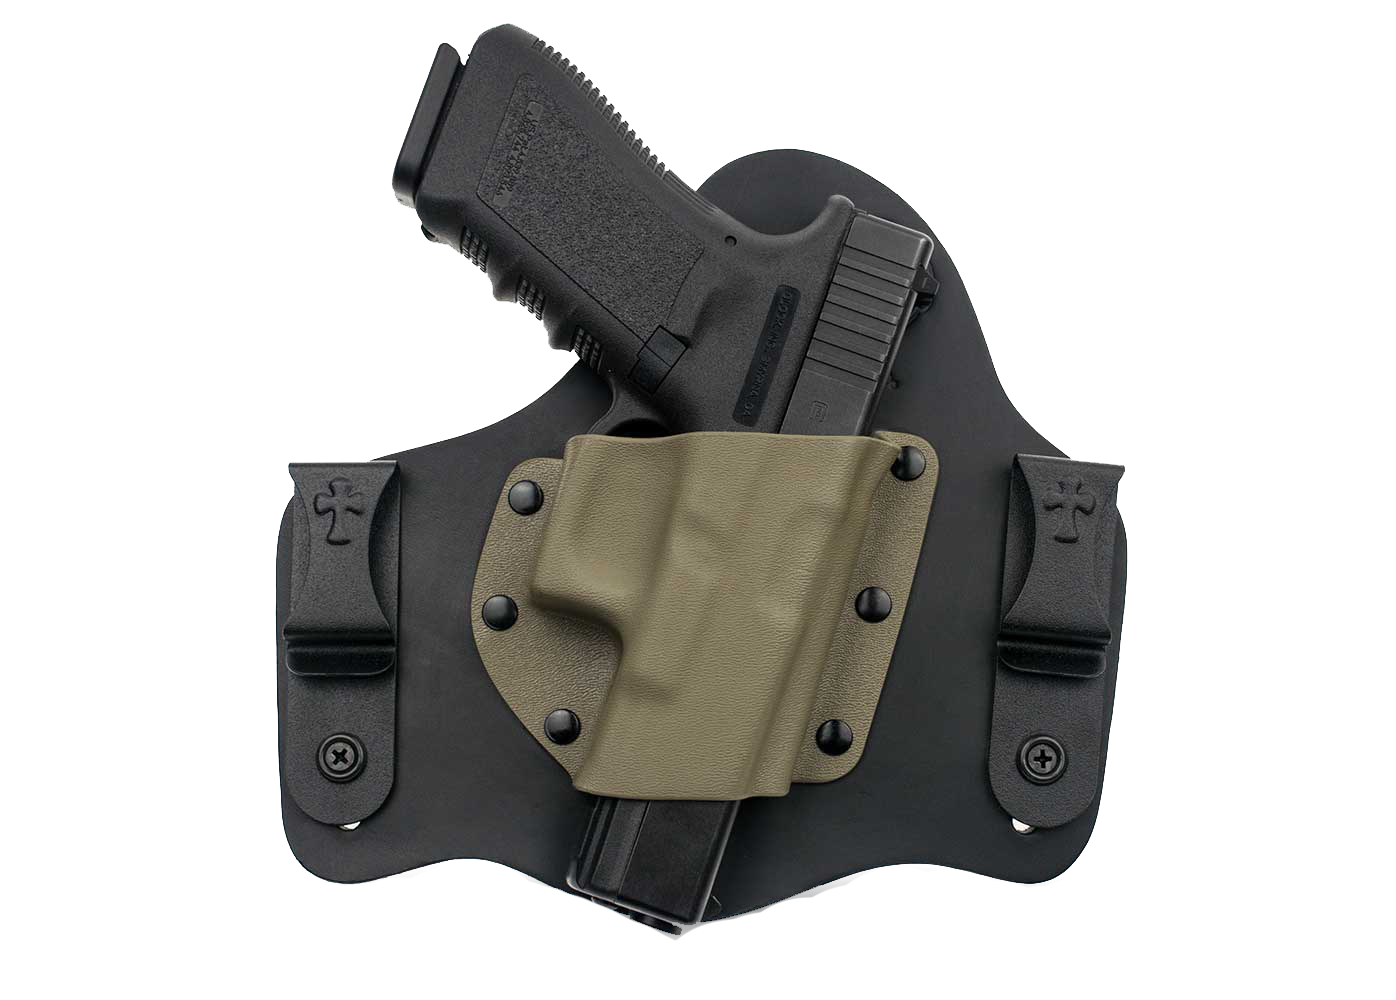 Crossbreed Supertuck Concealed Carry Holster